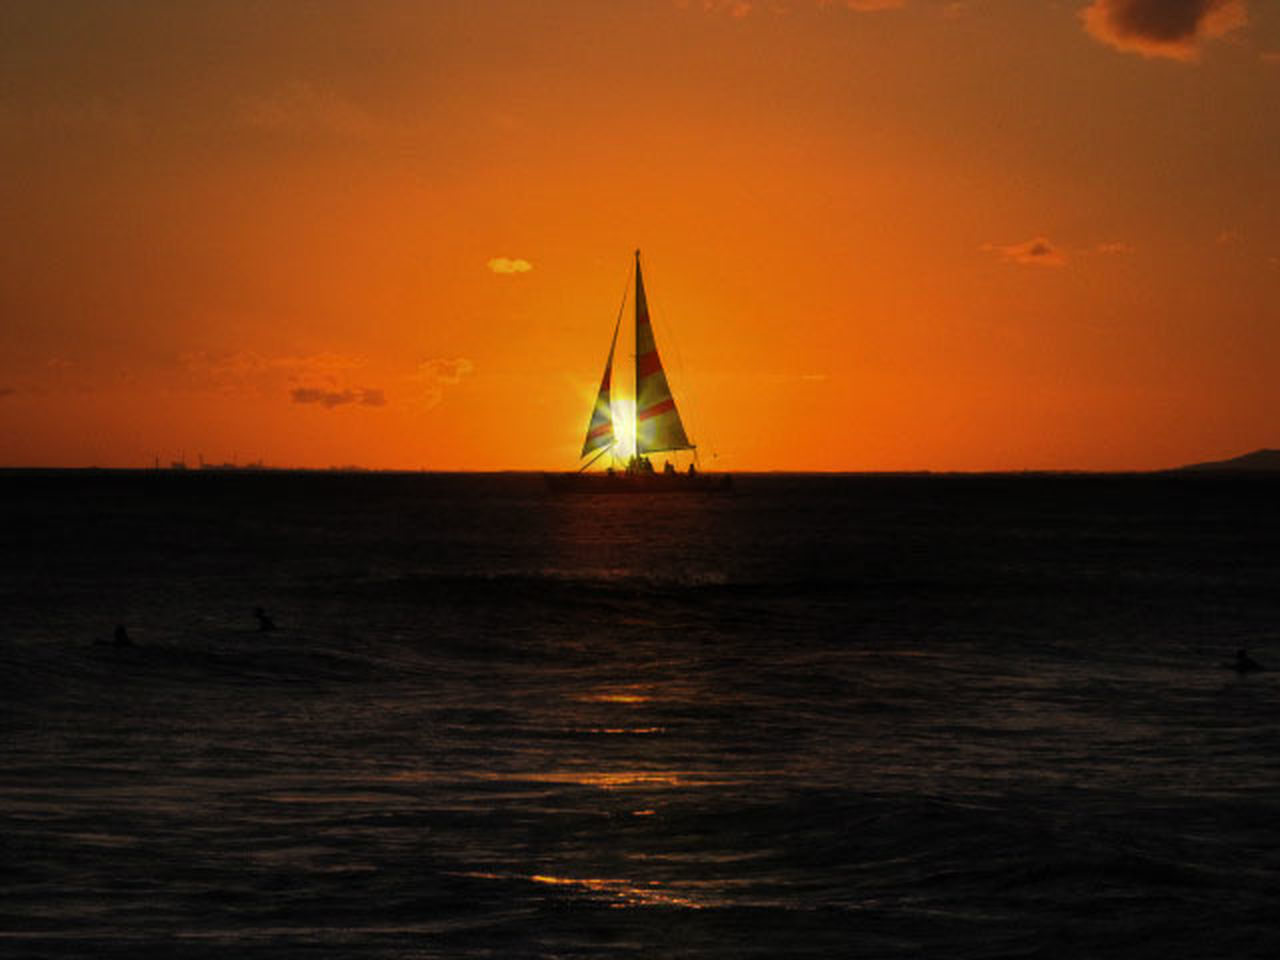 Ocean vibe Sunset Sailing Sea Sailboat Outdoors Sky EyeEm EyeEm Best Shots Nature Silhouette